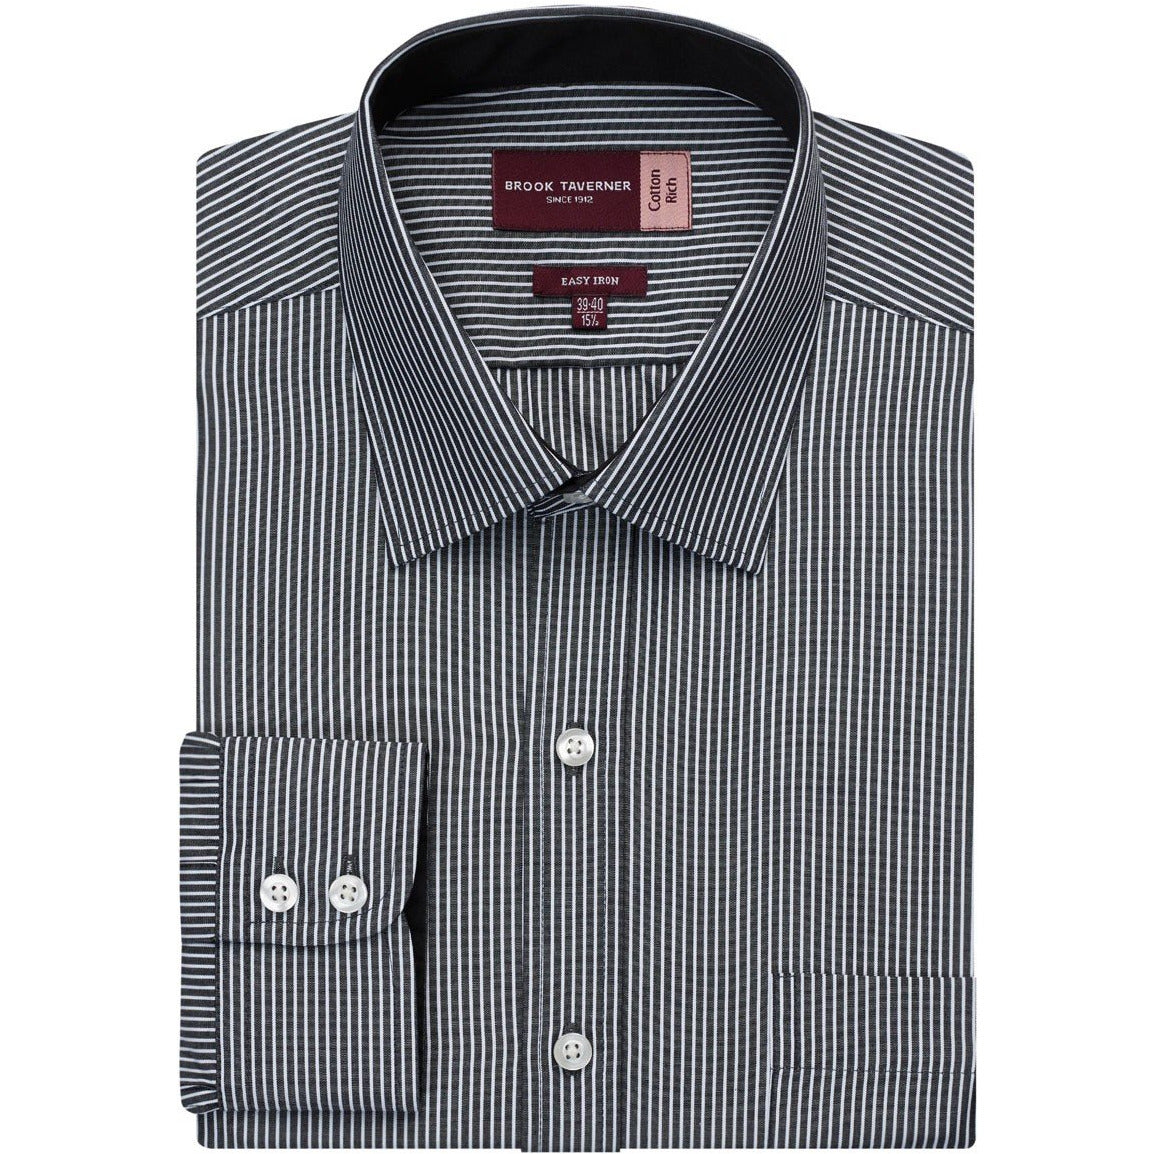 Mantova Classic Fit Shirt